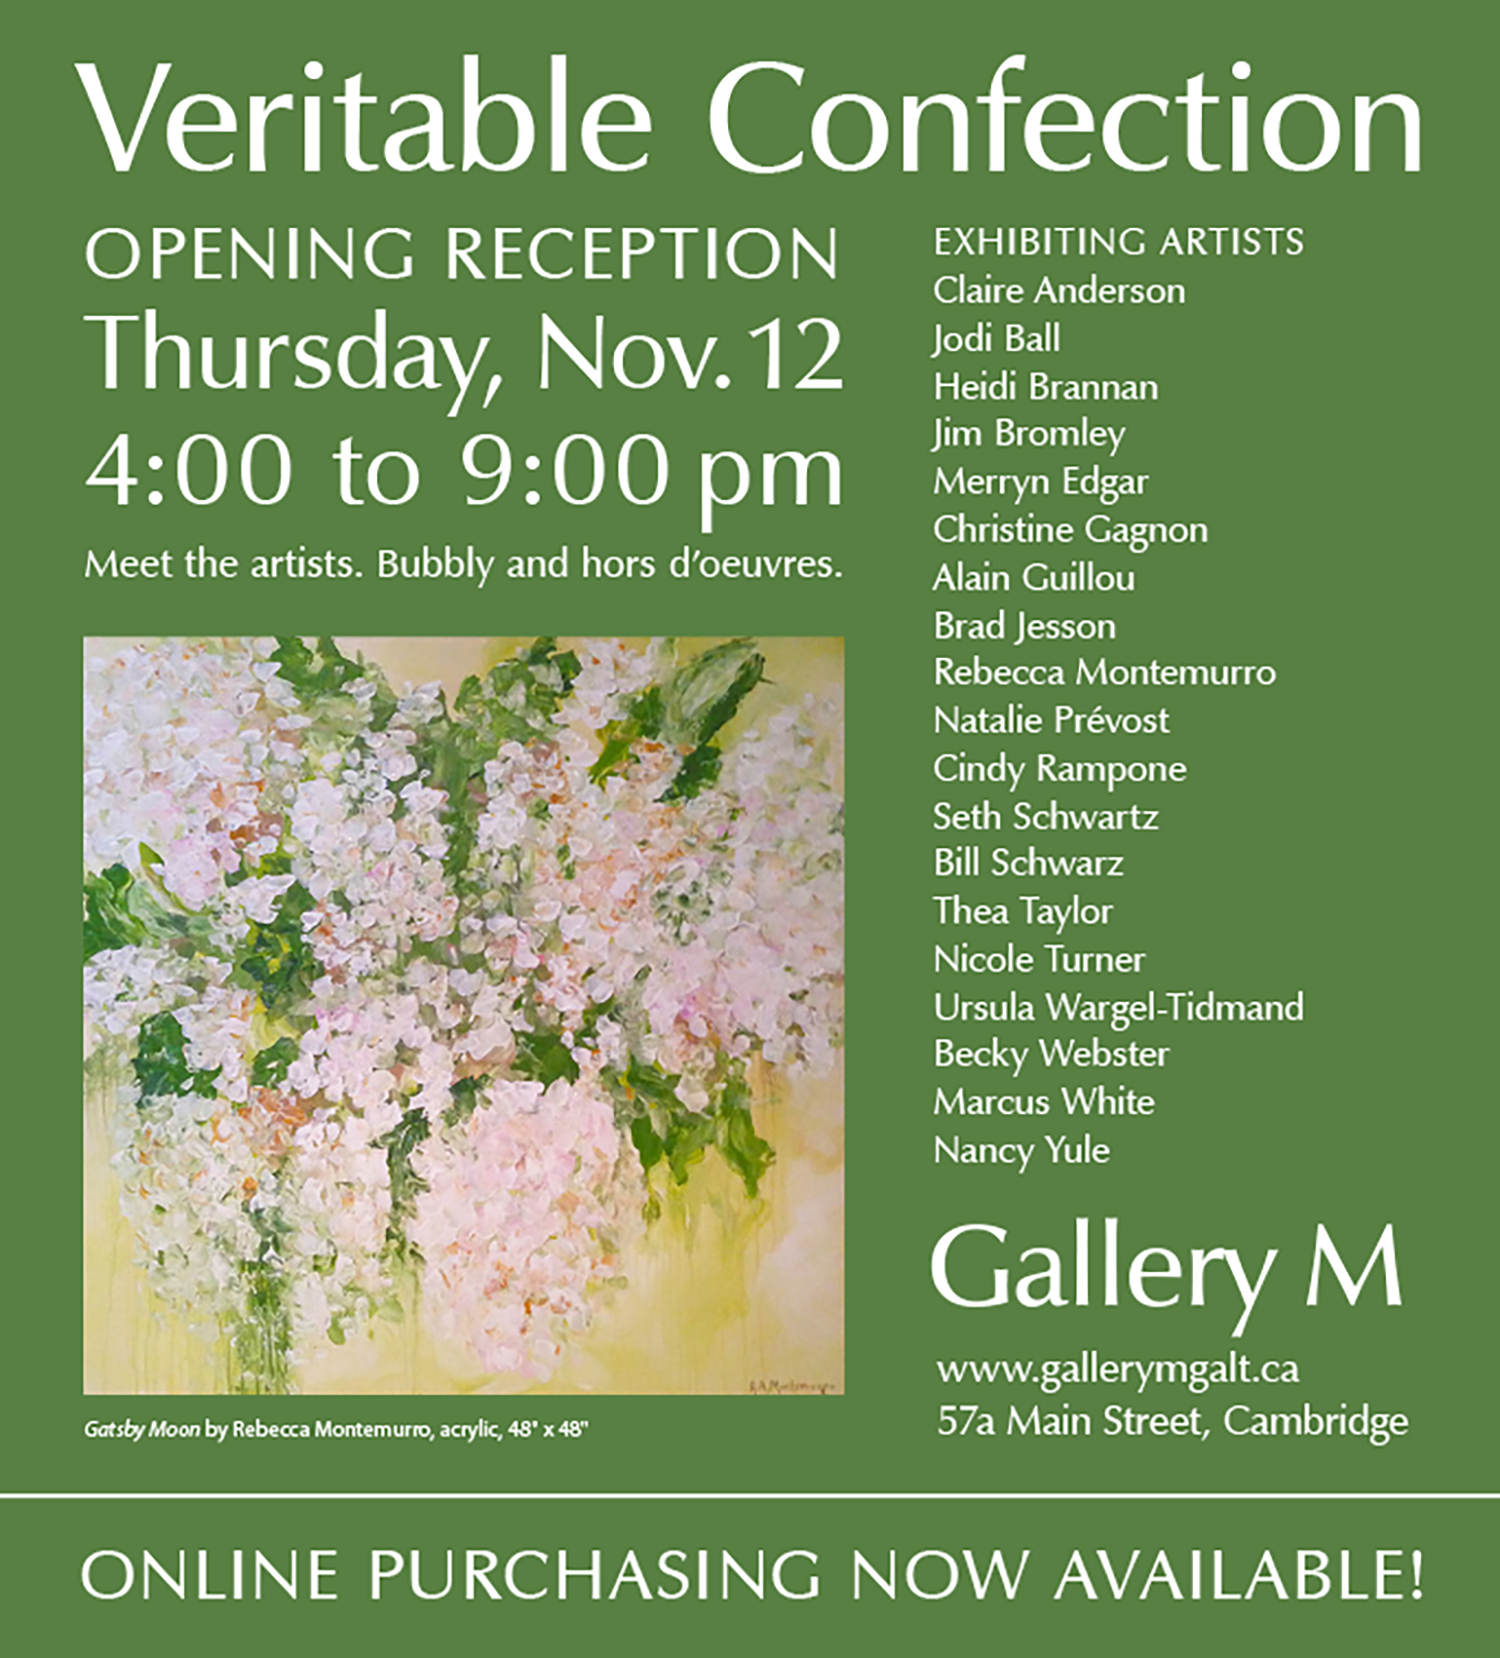 Veritable Confection Show at Gallery M, 2015